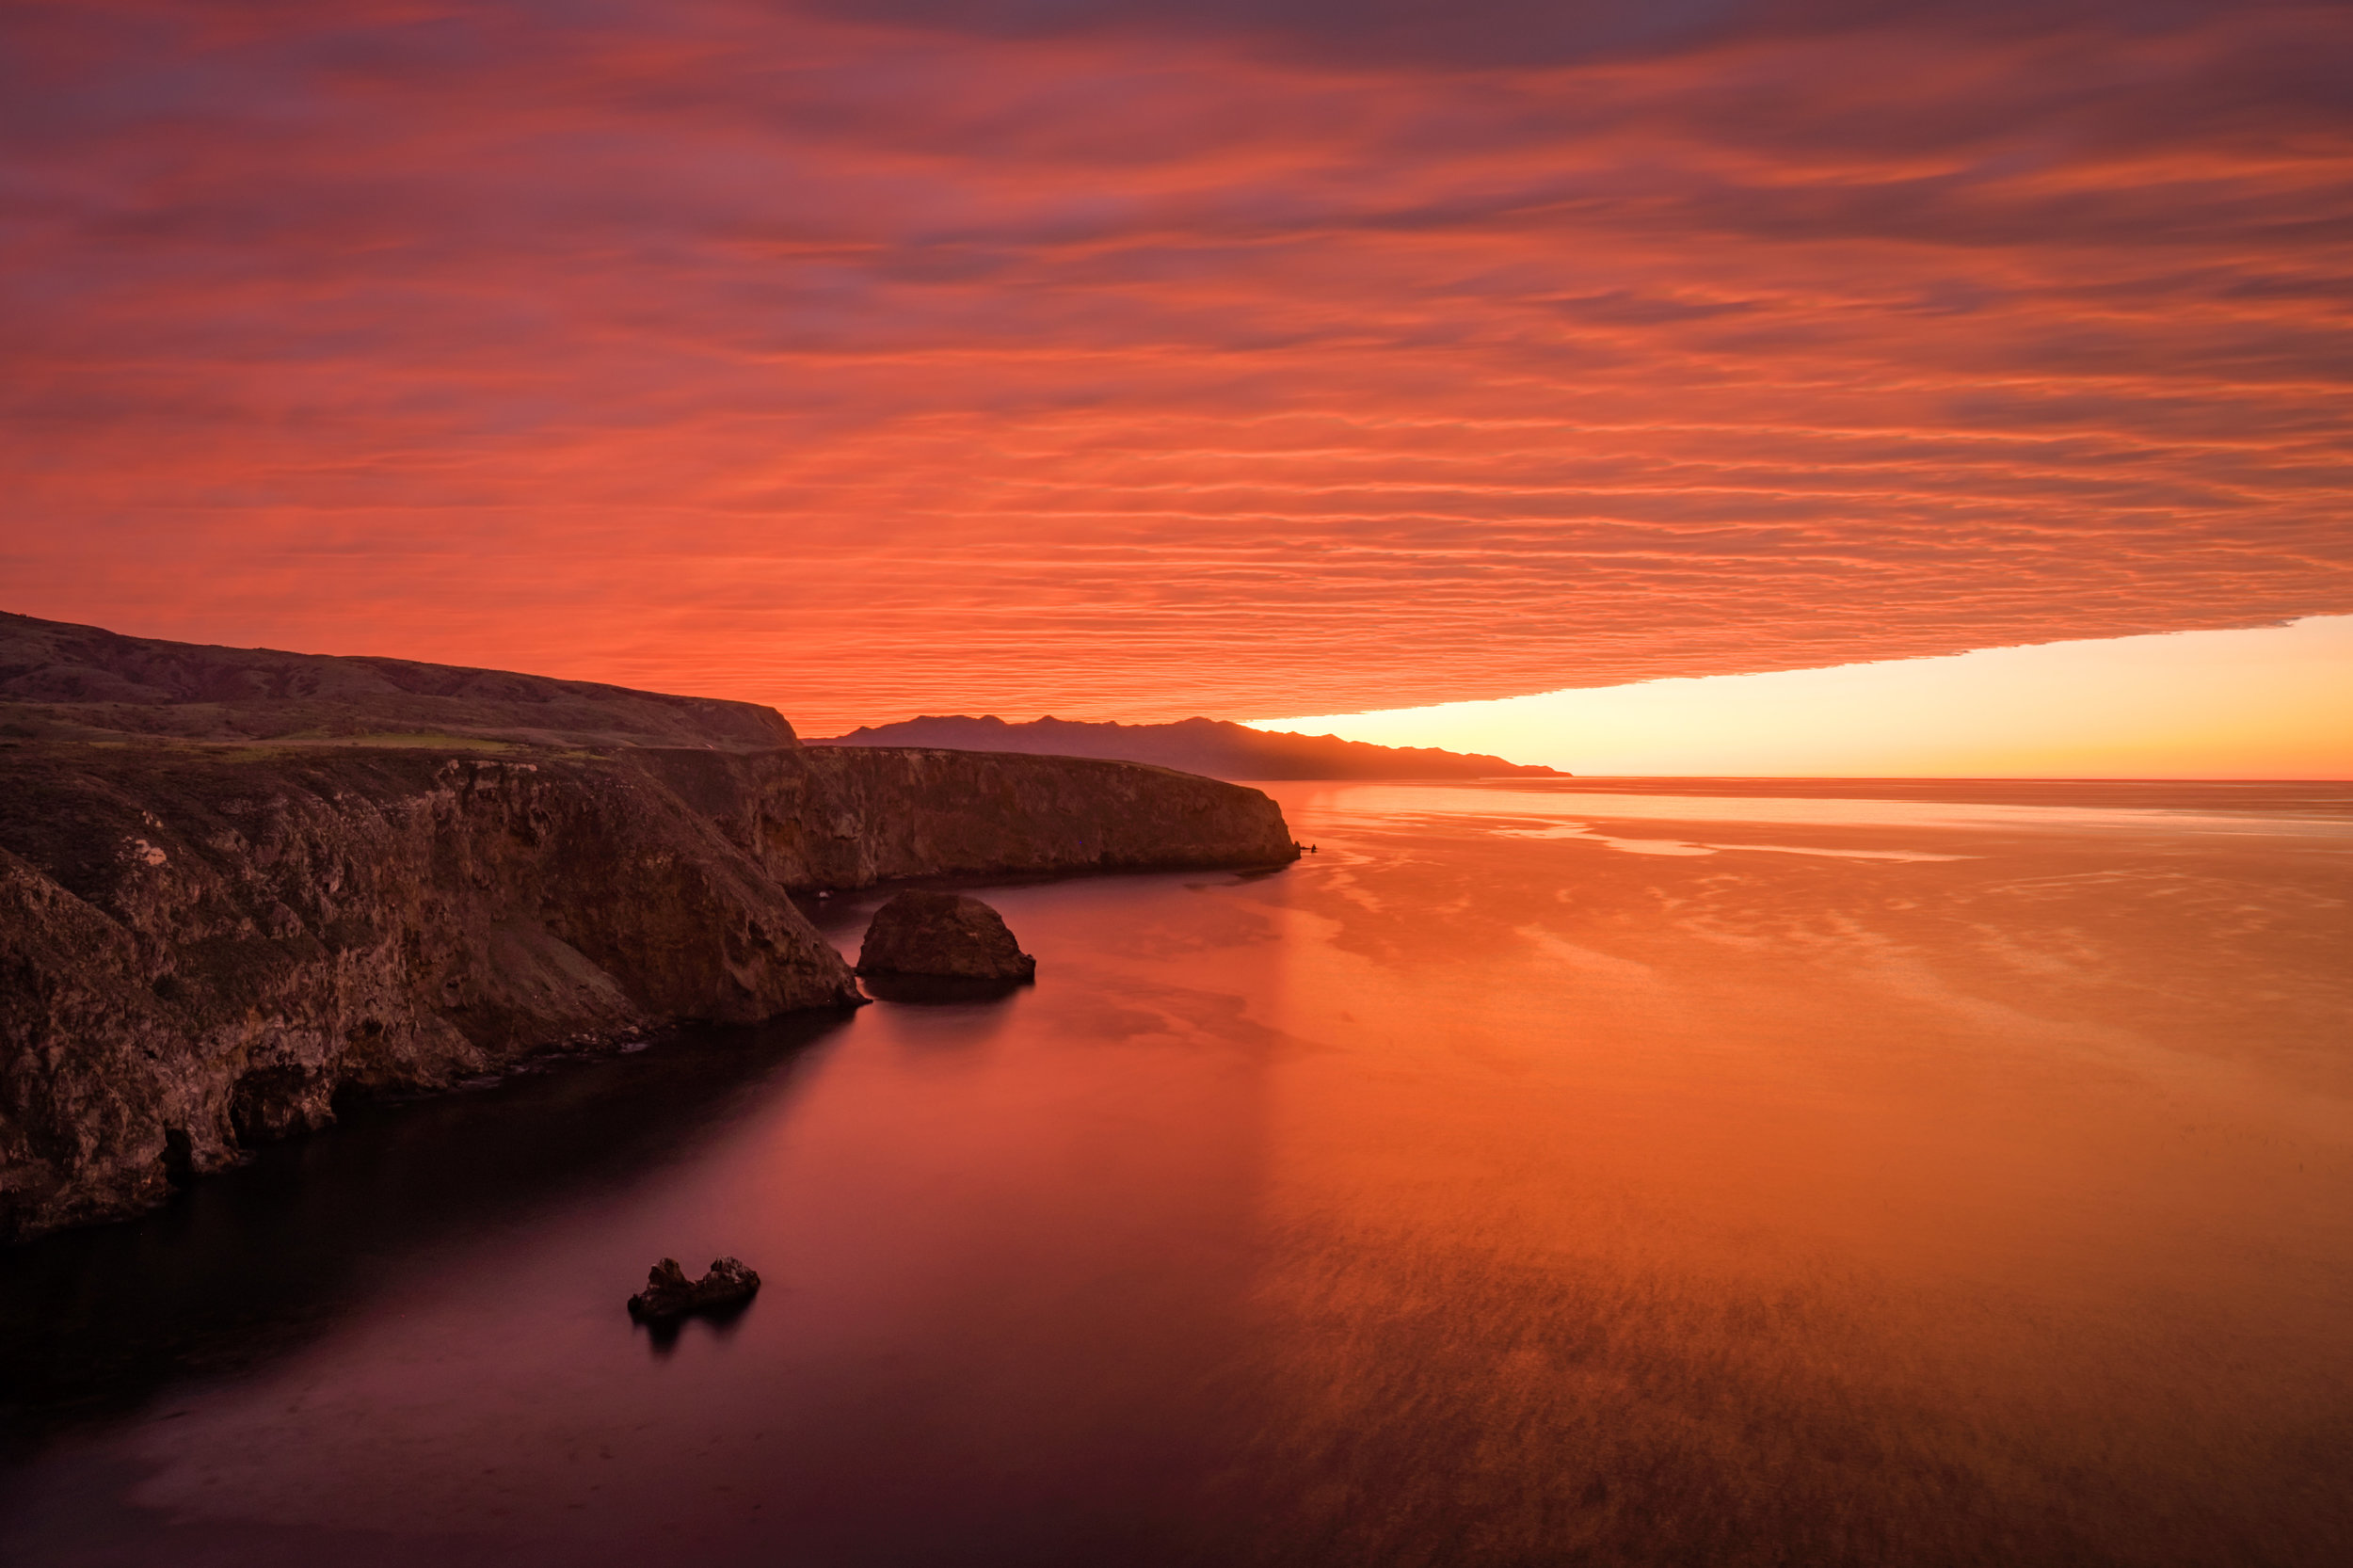 One of the most mesmerizing sunsets either of us had ever seen, from the Cavern Point overlook on Santa Cruz Island.